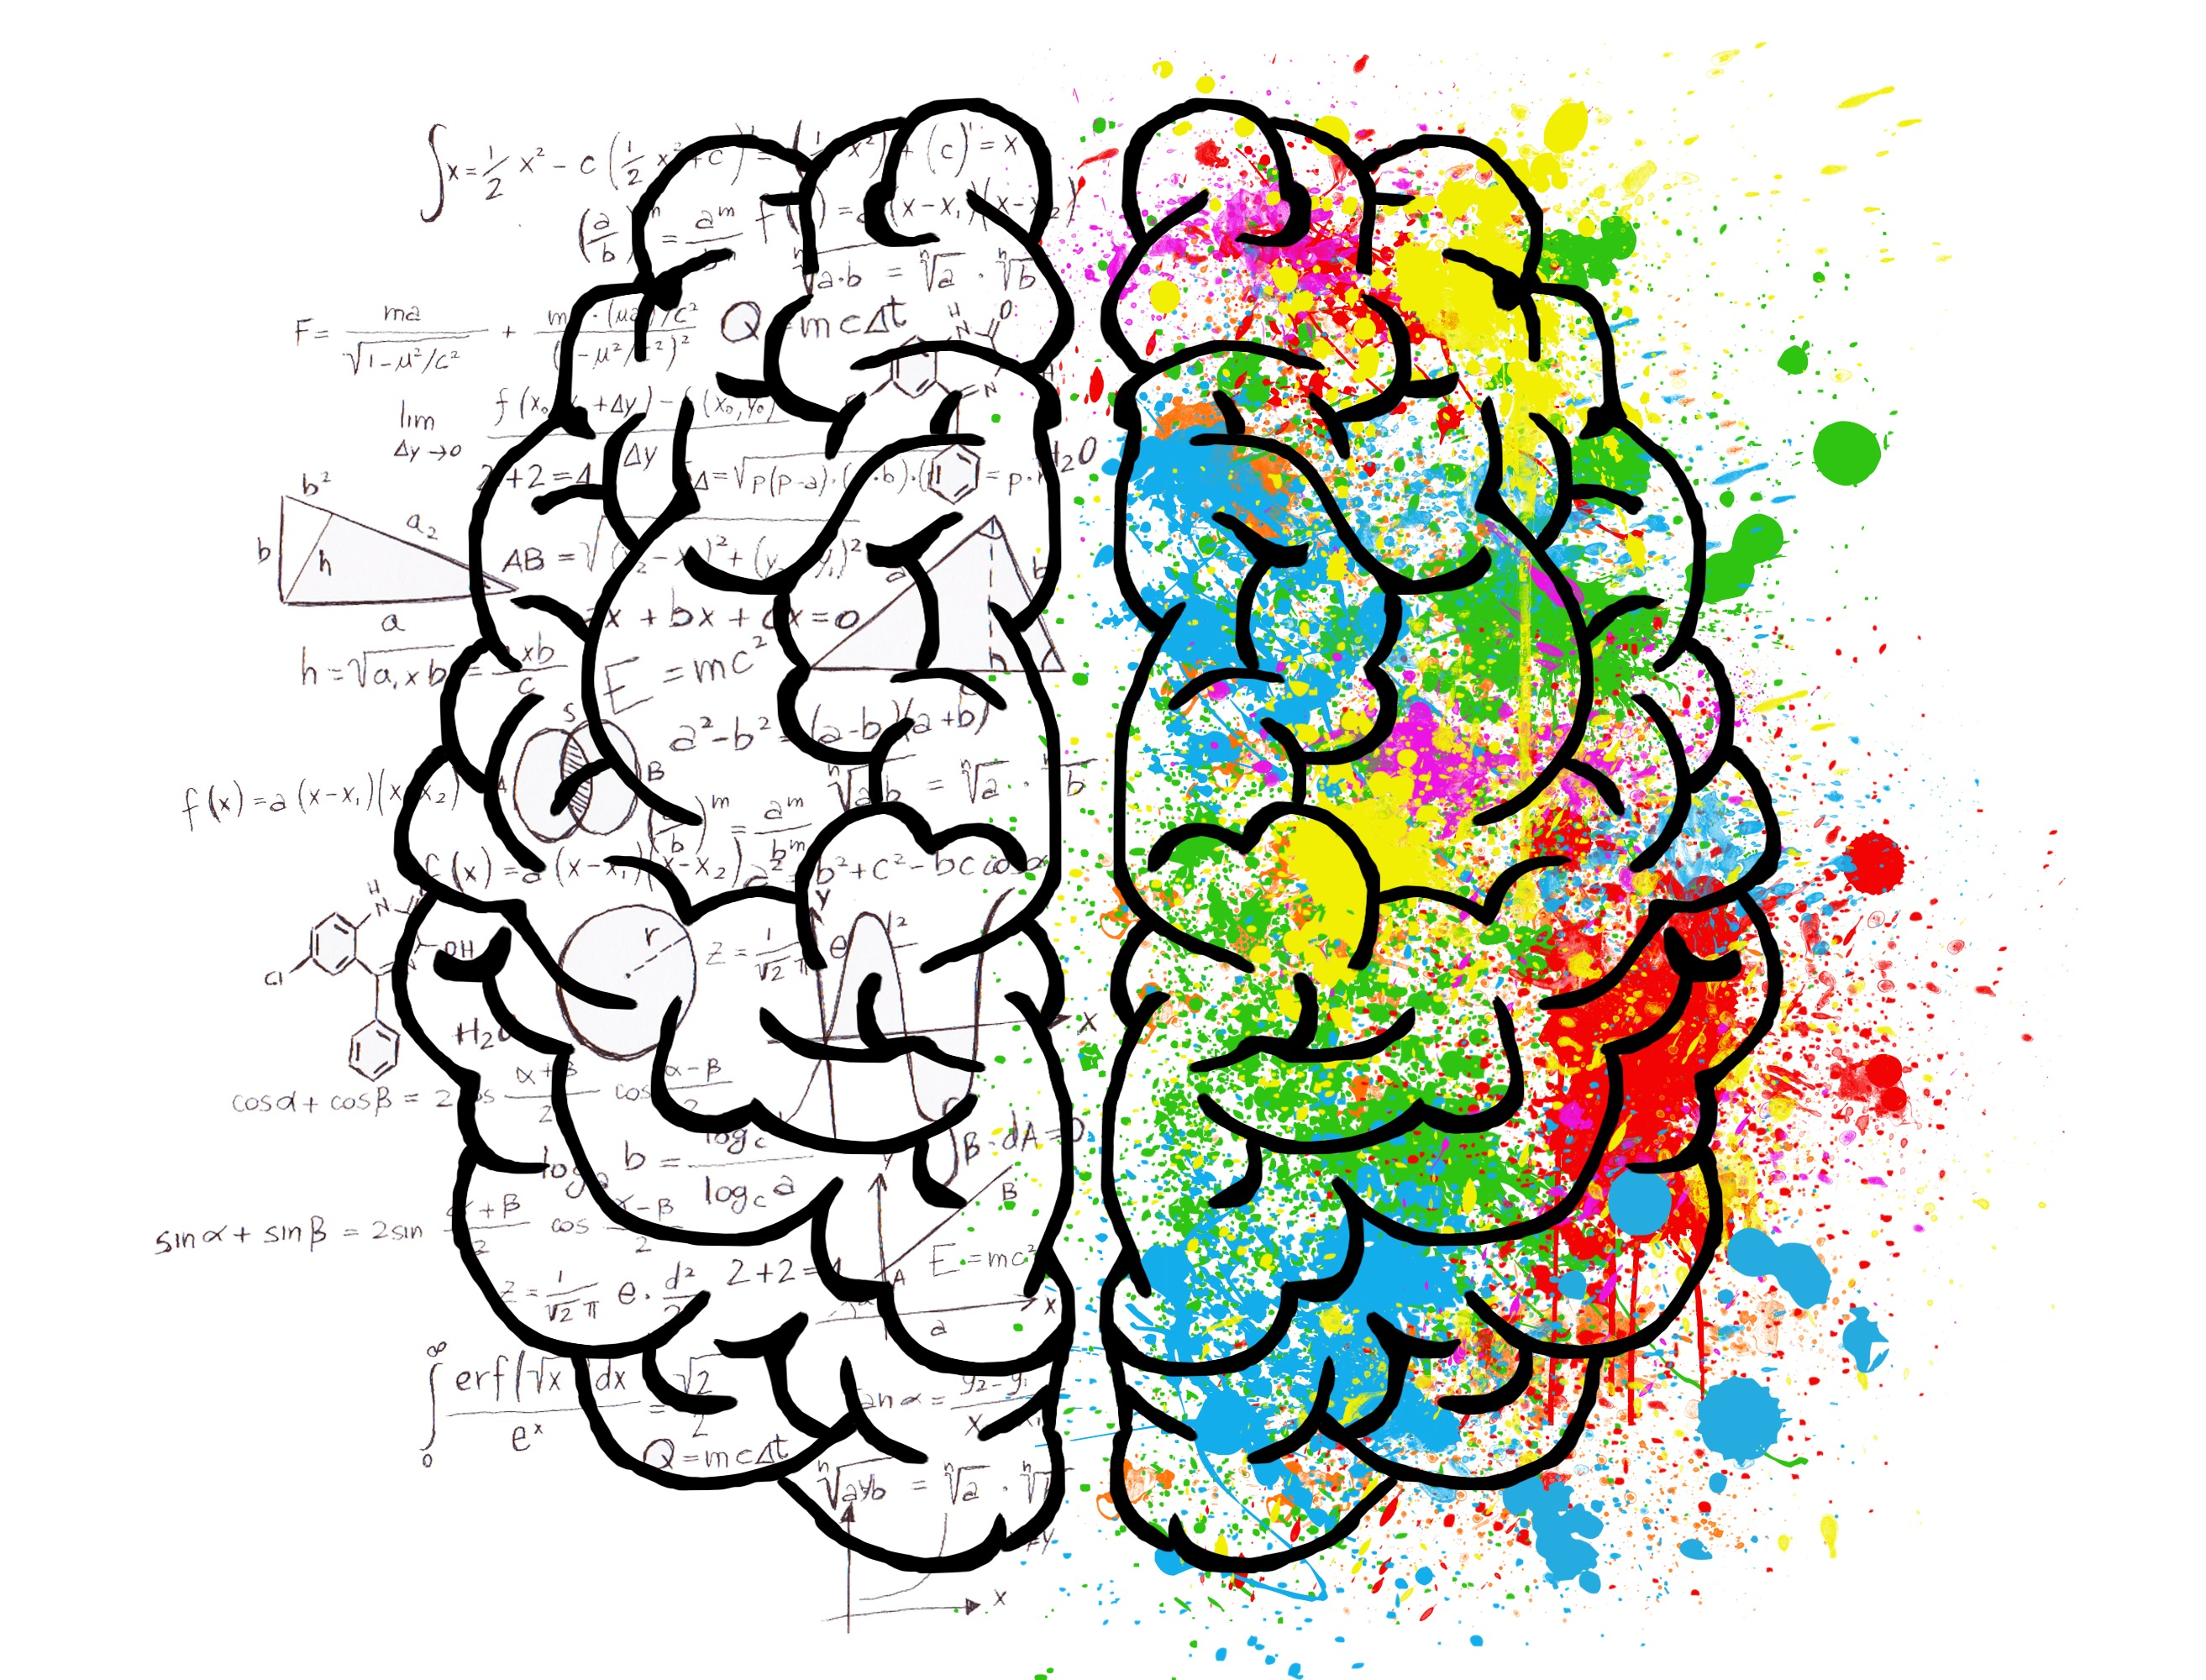 Colourful hand-drawn image of a brain with black and white equations on left and rainbow graffiti on right.